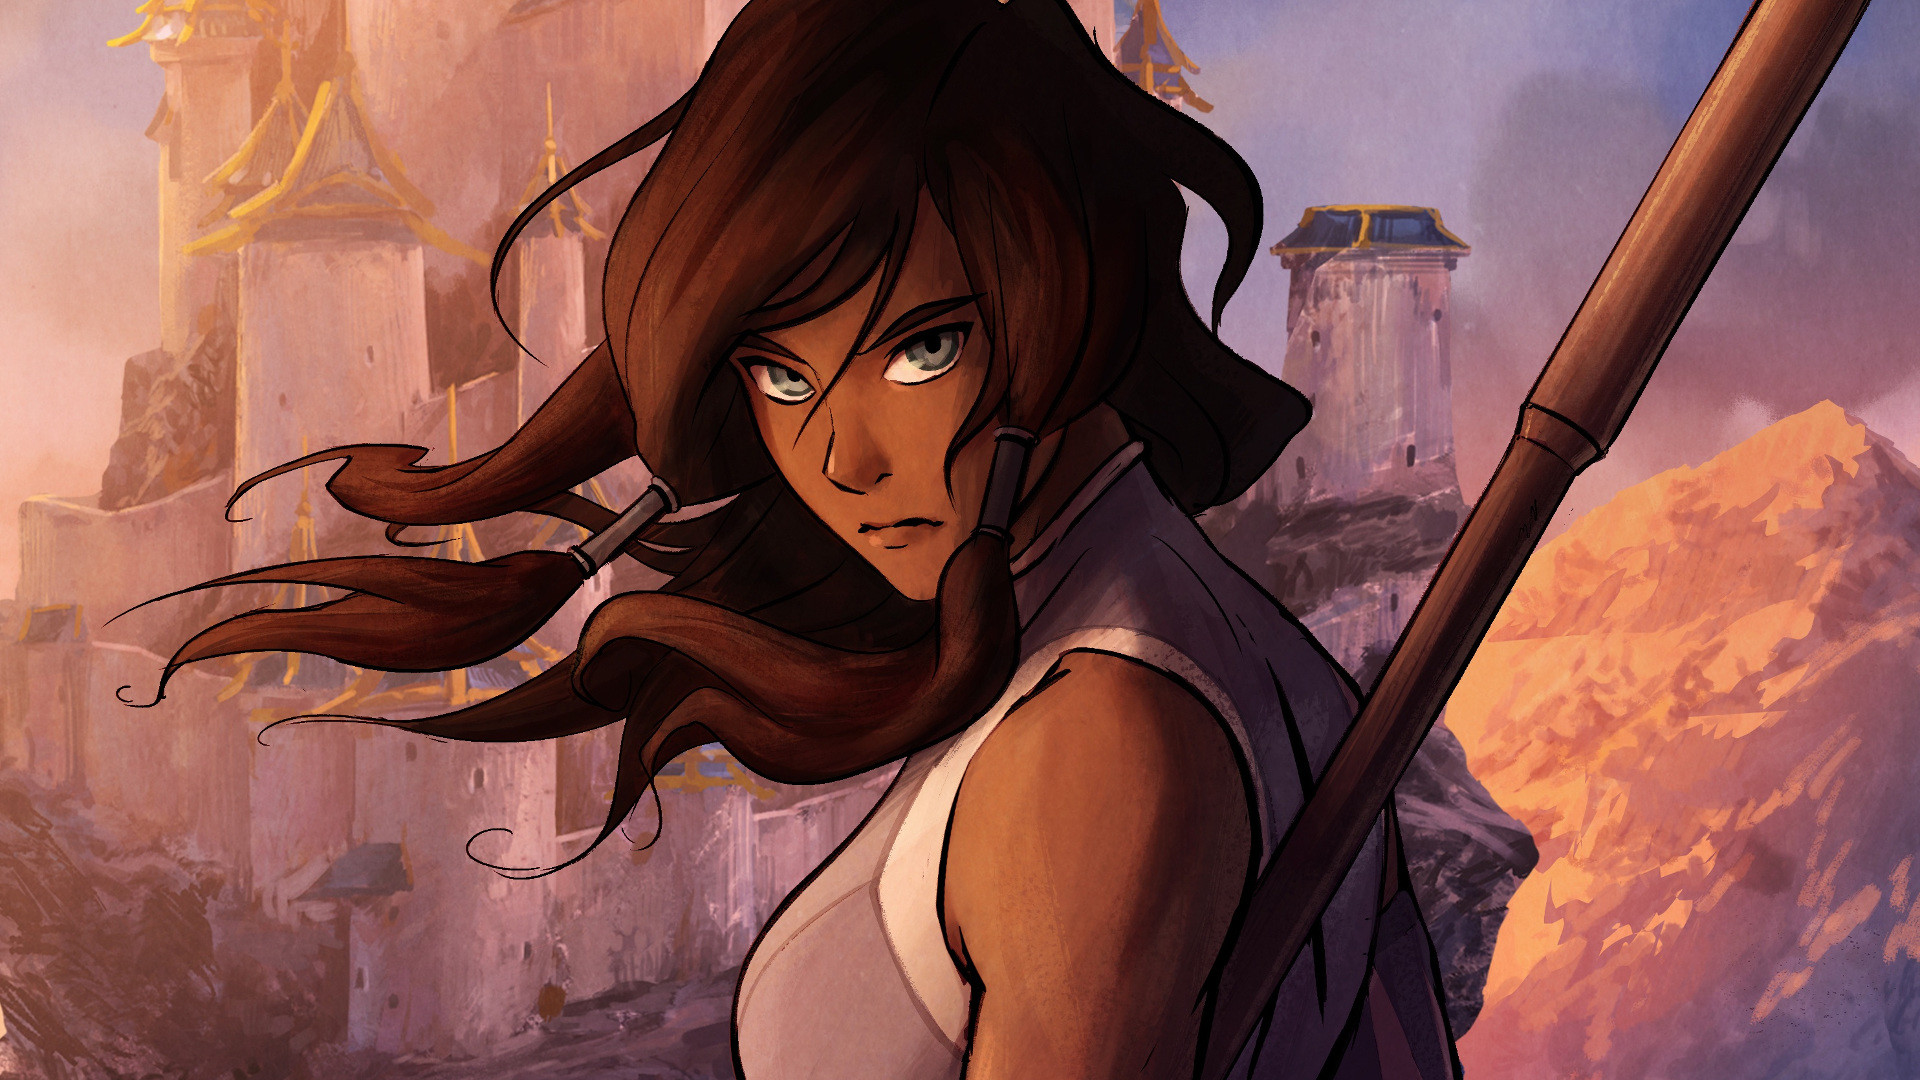 1920x1080 Anime Avatar: The Legend Of Korra Wallpaper